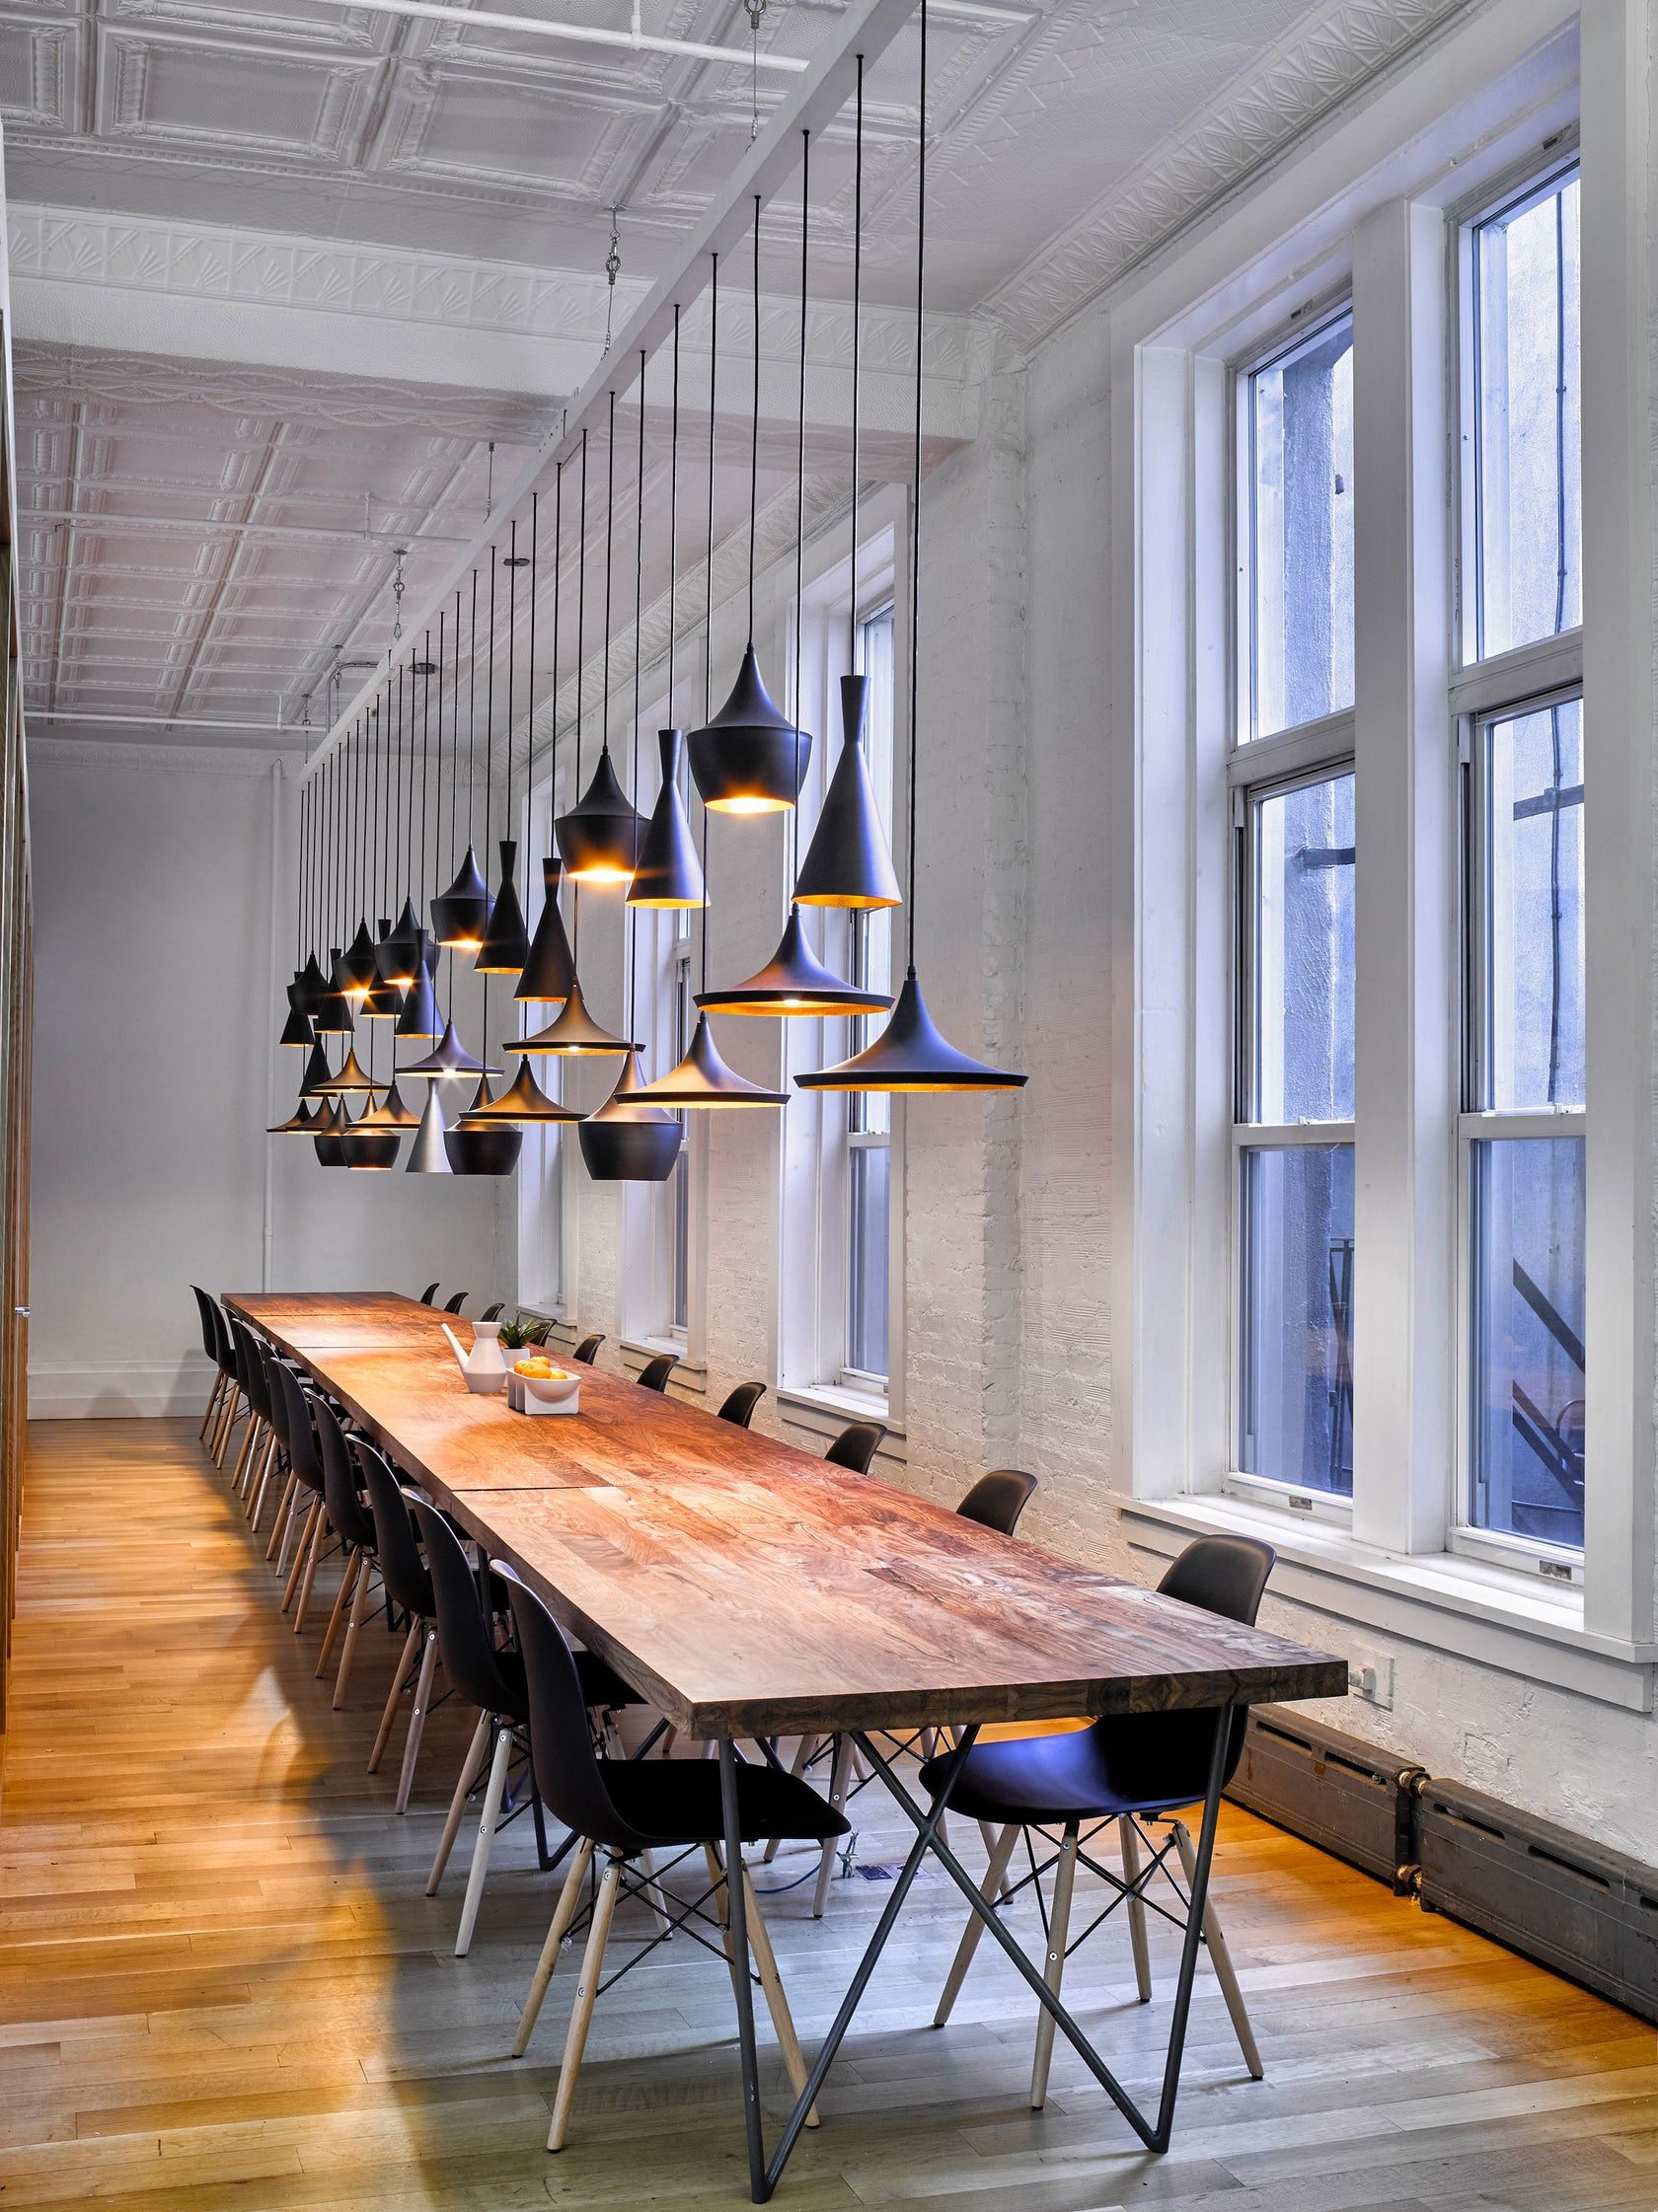 How To Specify Pendant Lighting Office Interior Design Home Office Decor Office Nyc